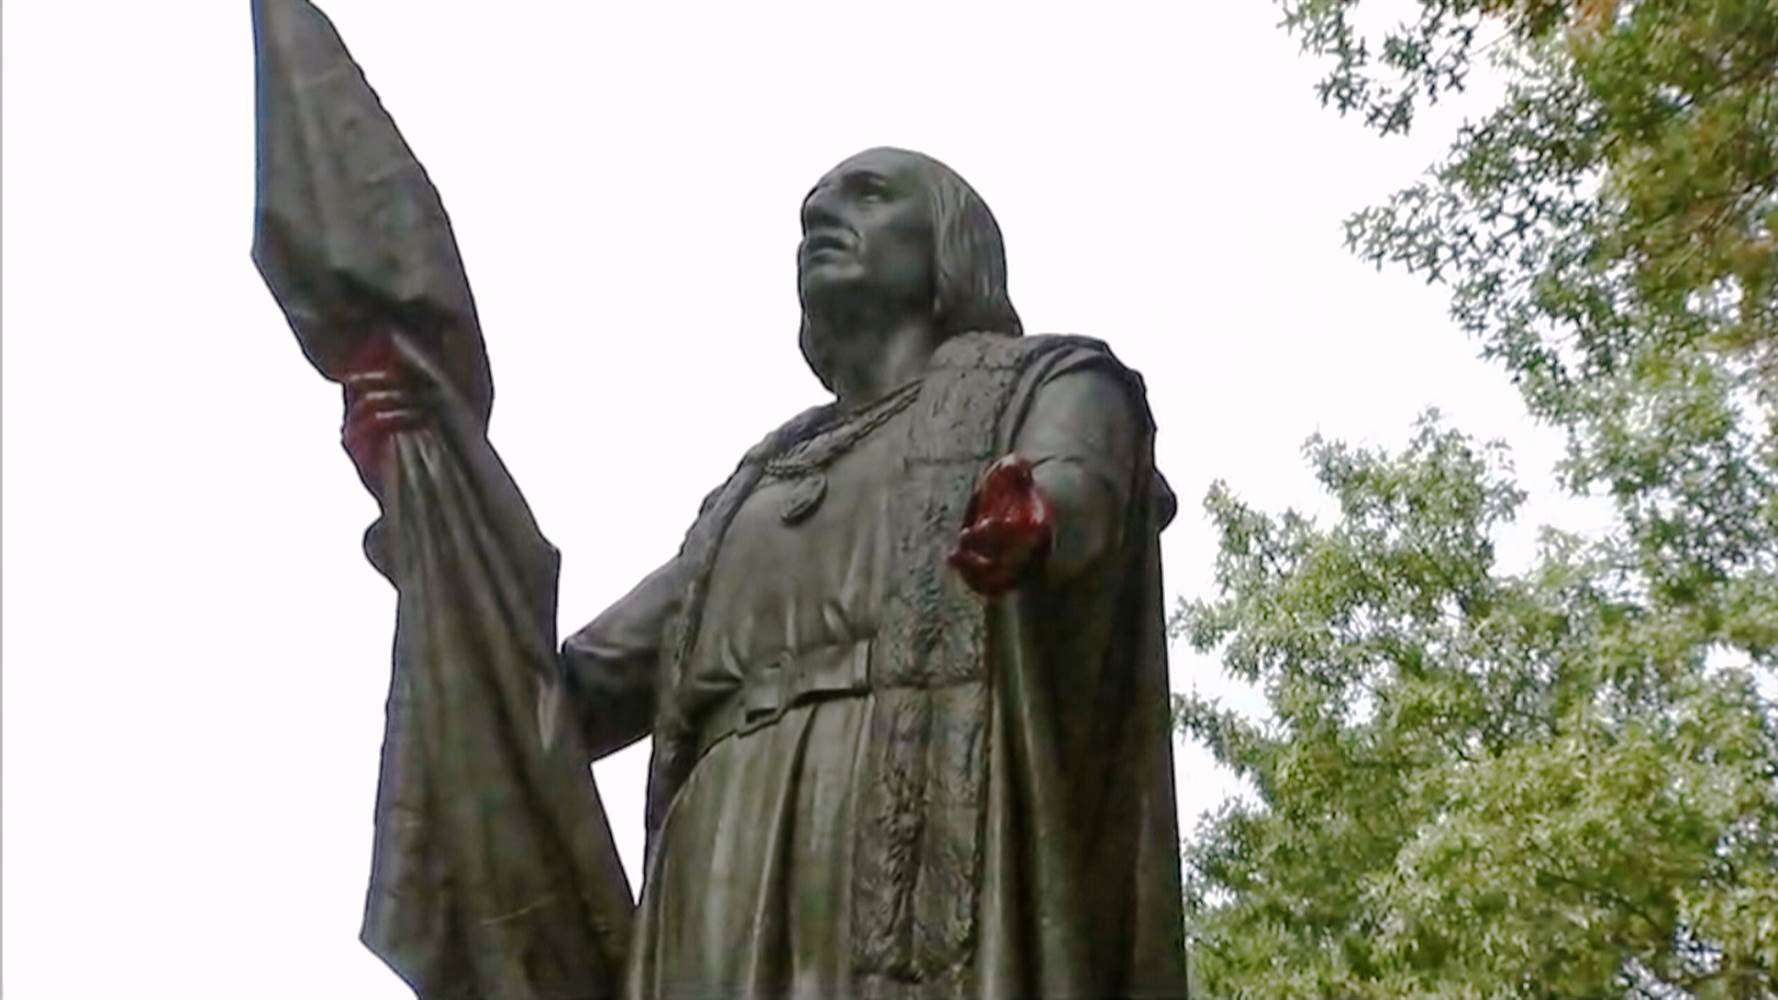 Central Park Columbus statue vandalized